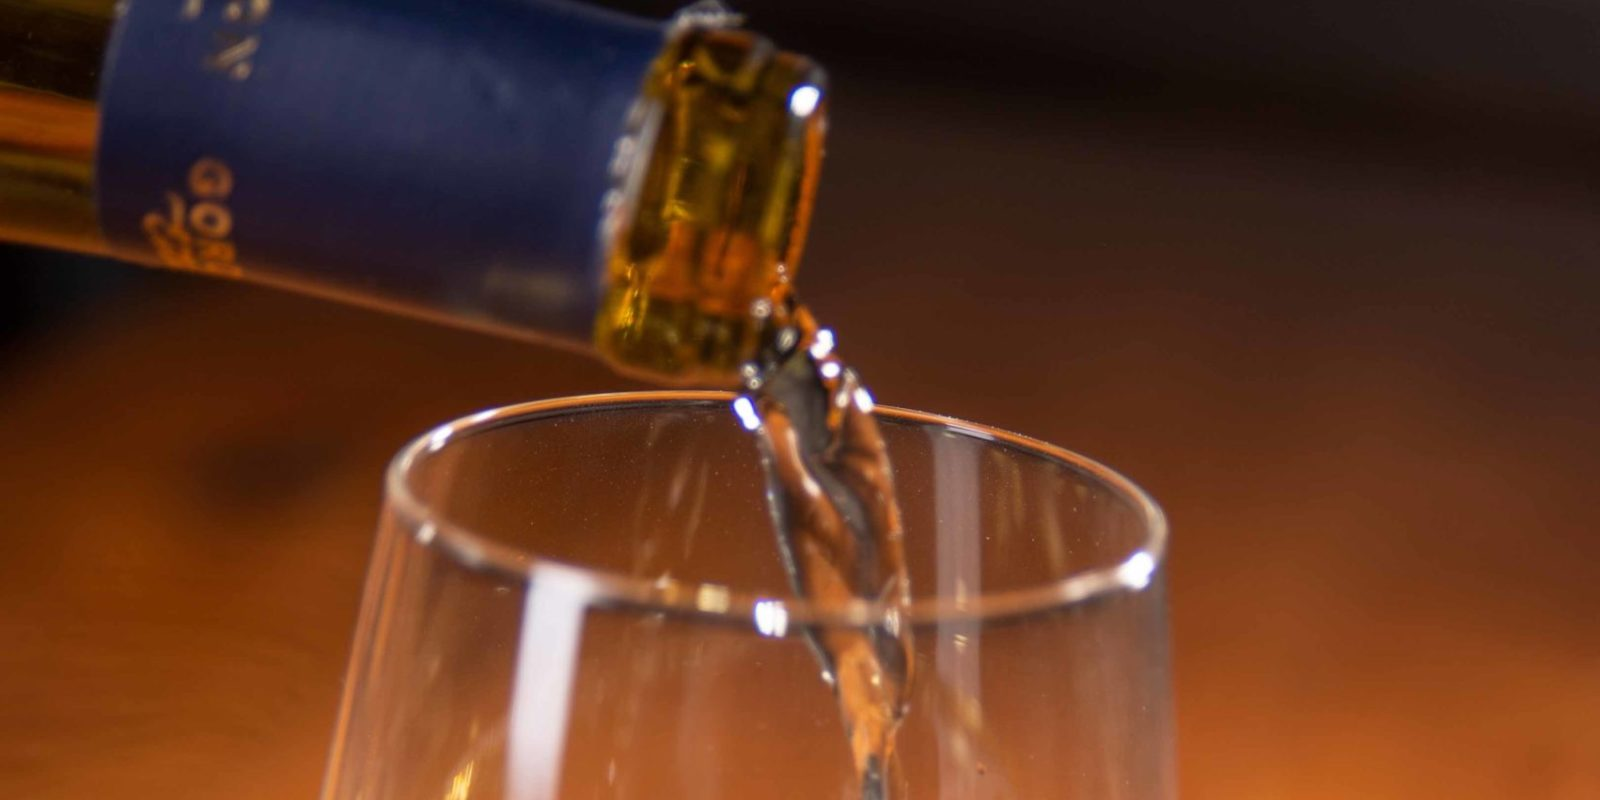 Wine pouring into a glass.